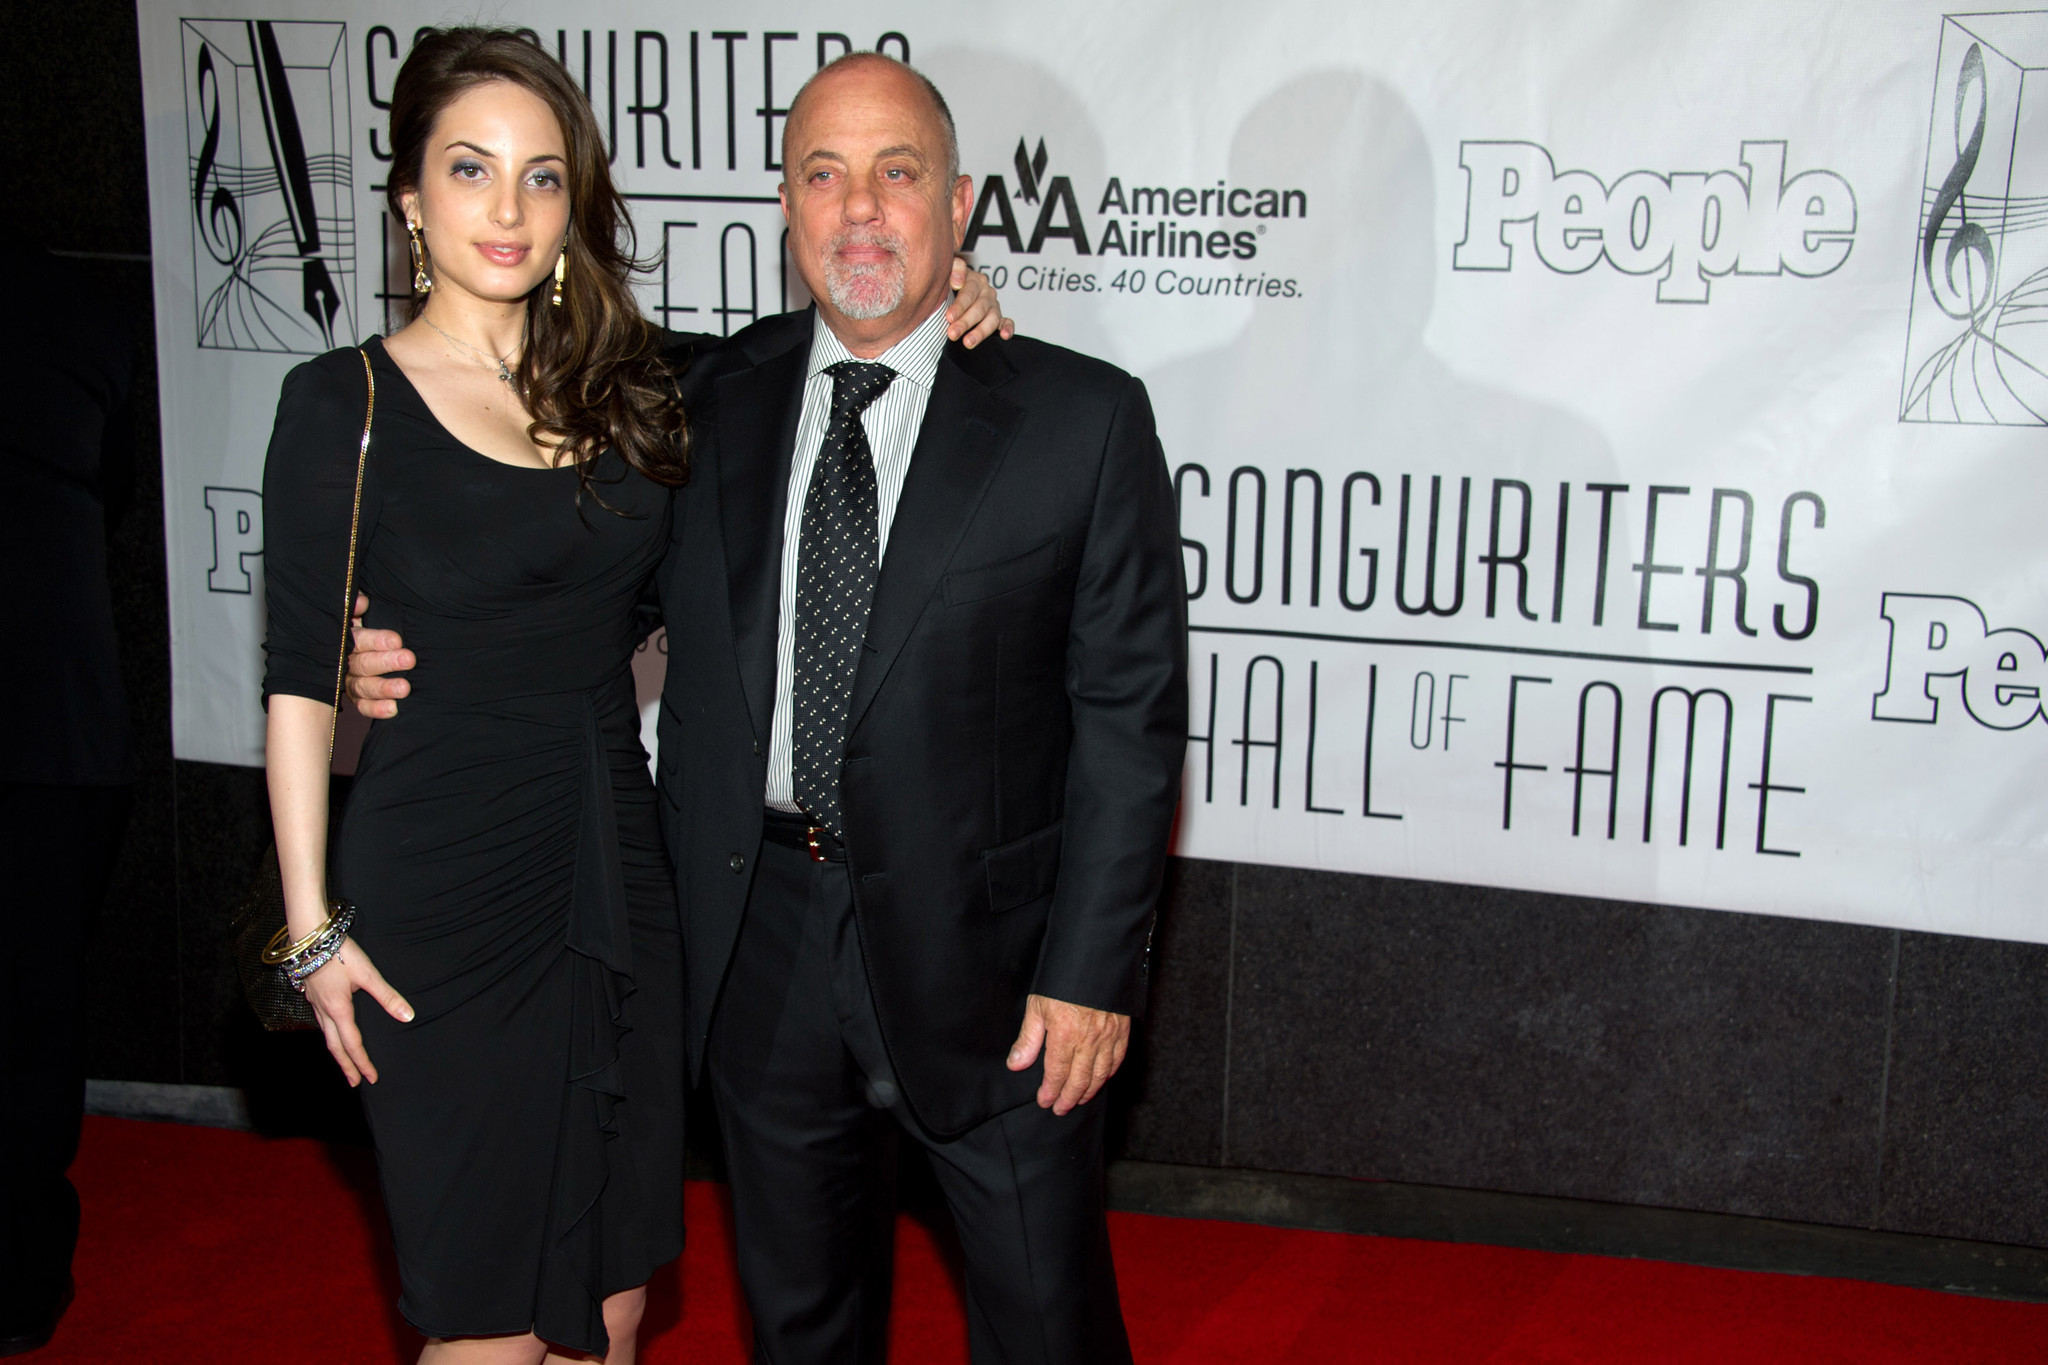 SEE IT: Billy Joel plays 'White Christmas' with daughter Alexa Ray Joel at MSG